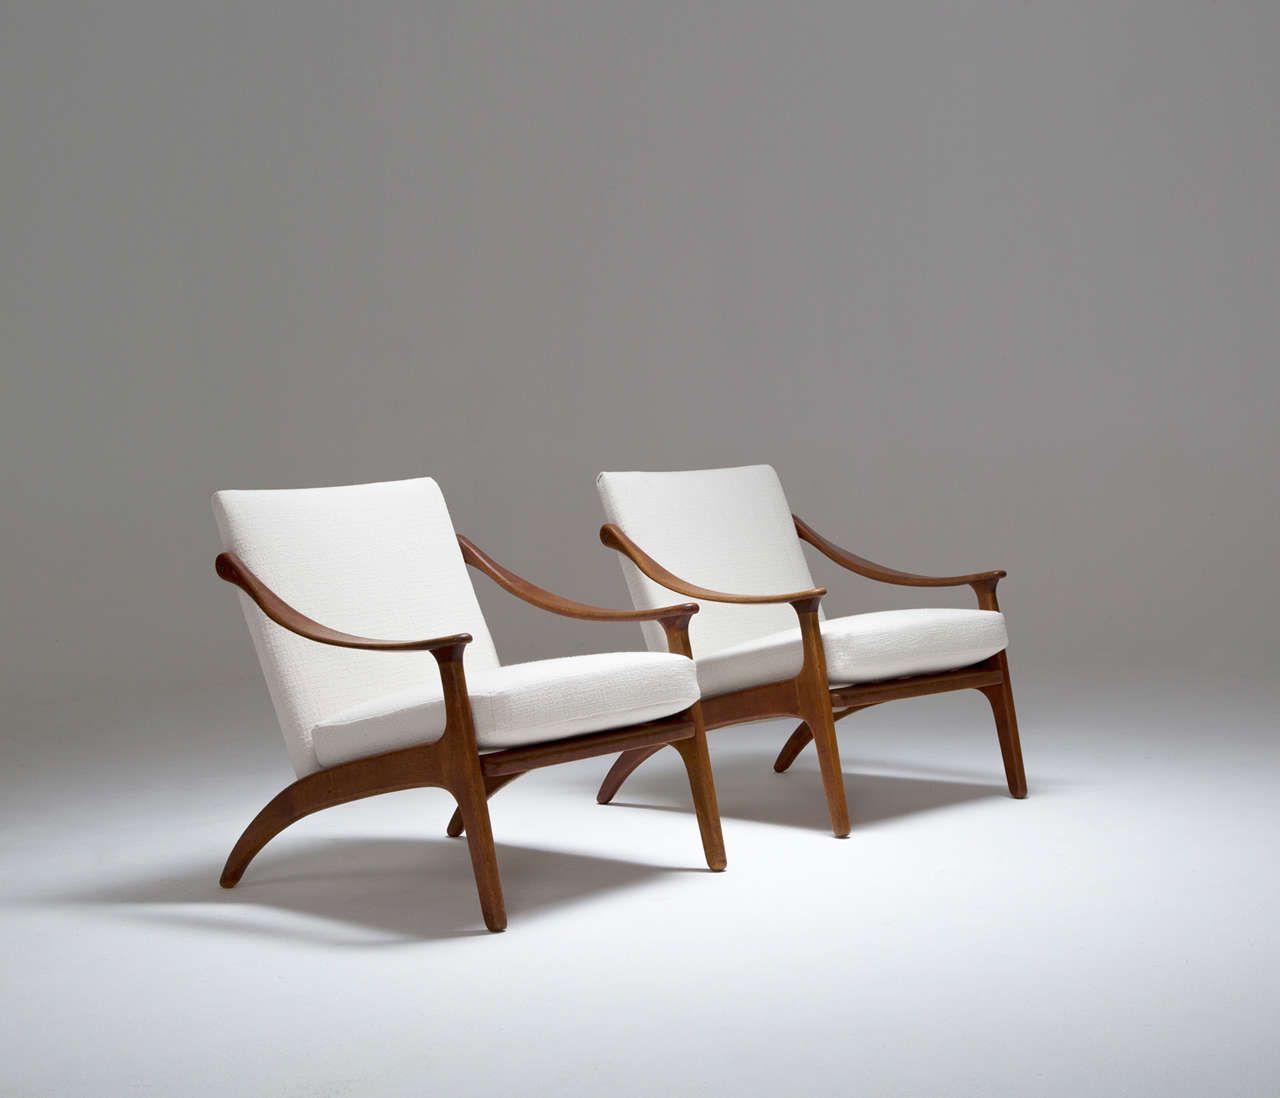 Bon Arne Hovmand Olsen, Easy Chairs. If You Like Work Like